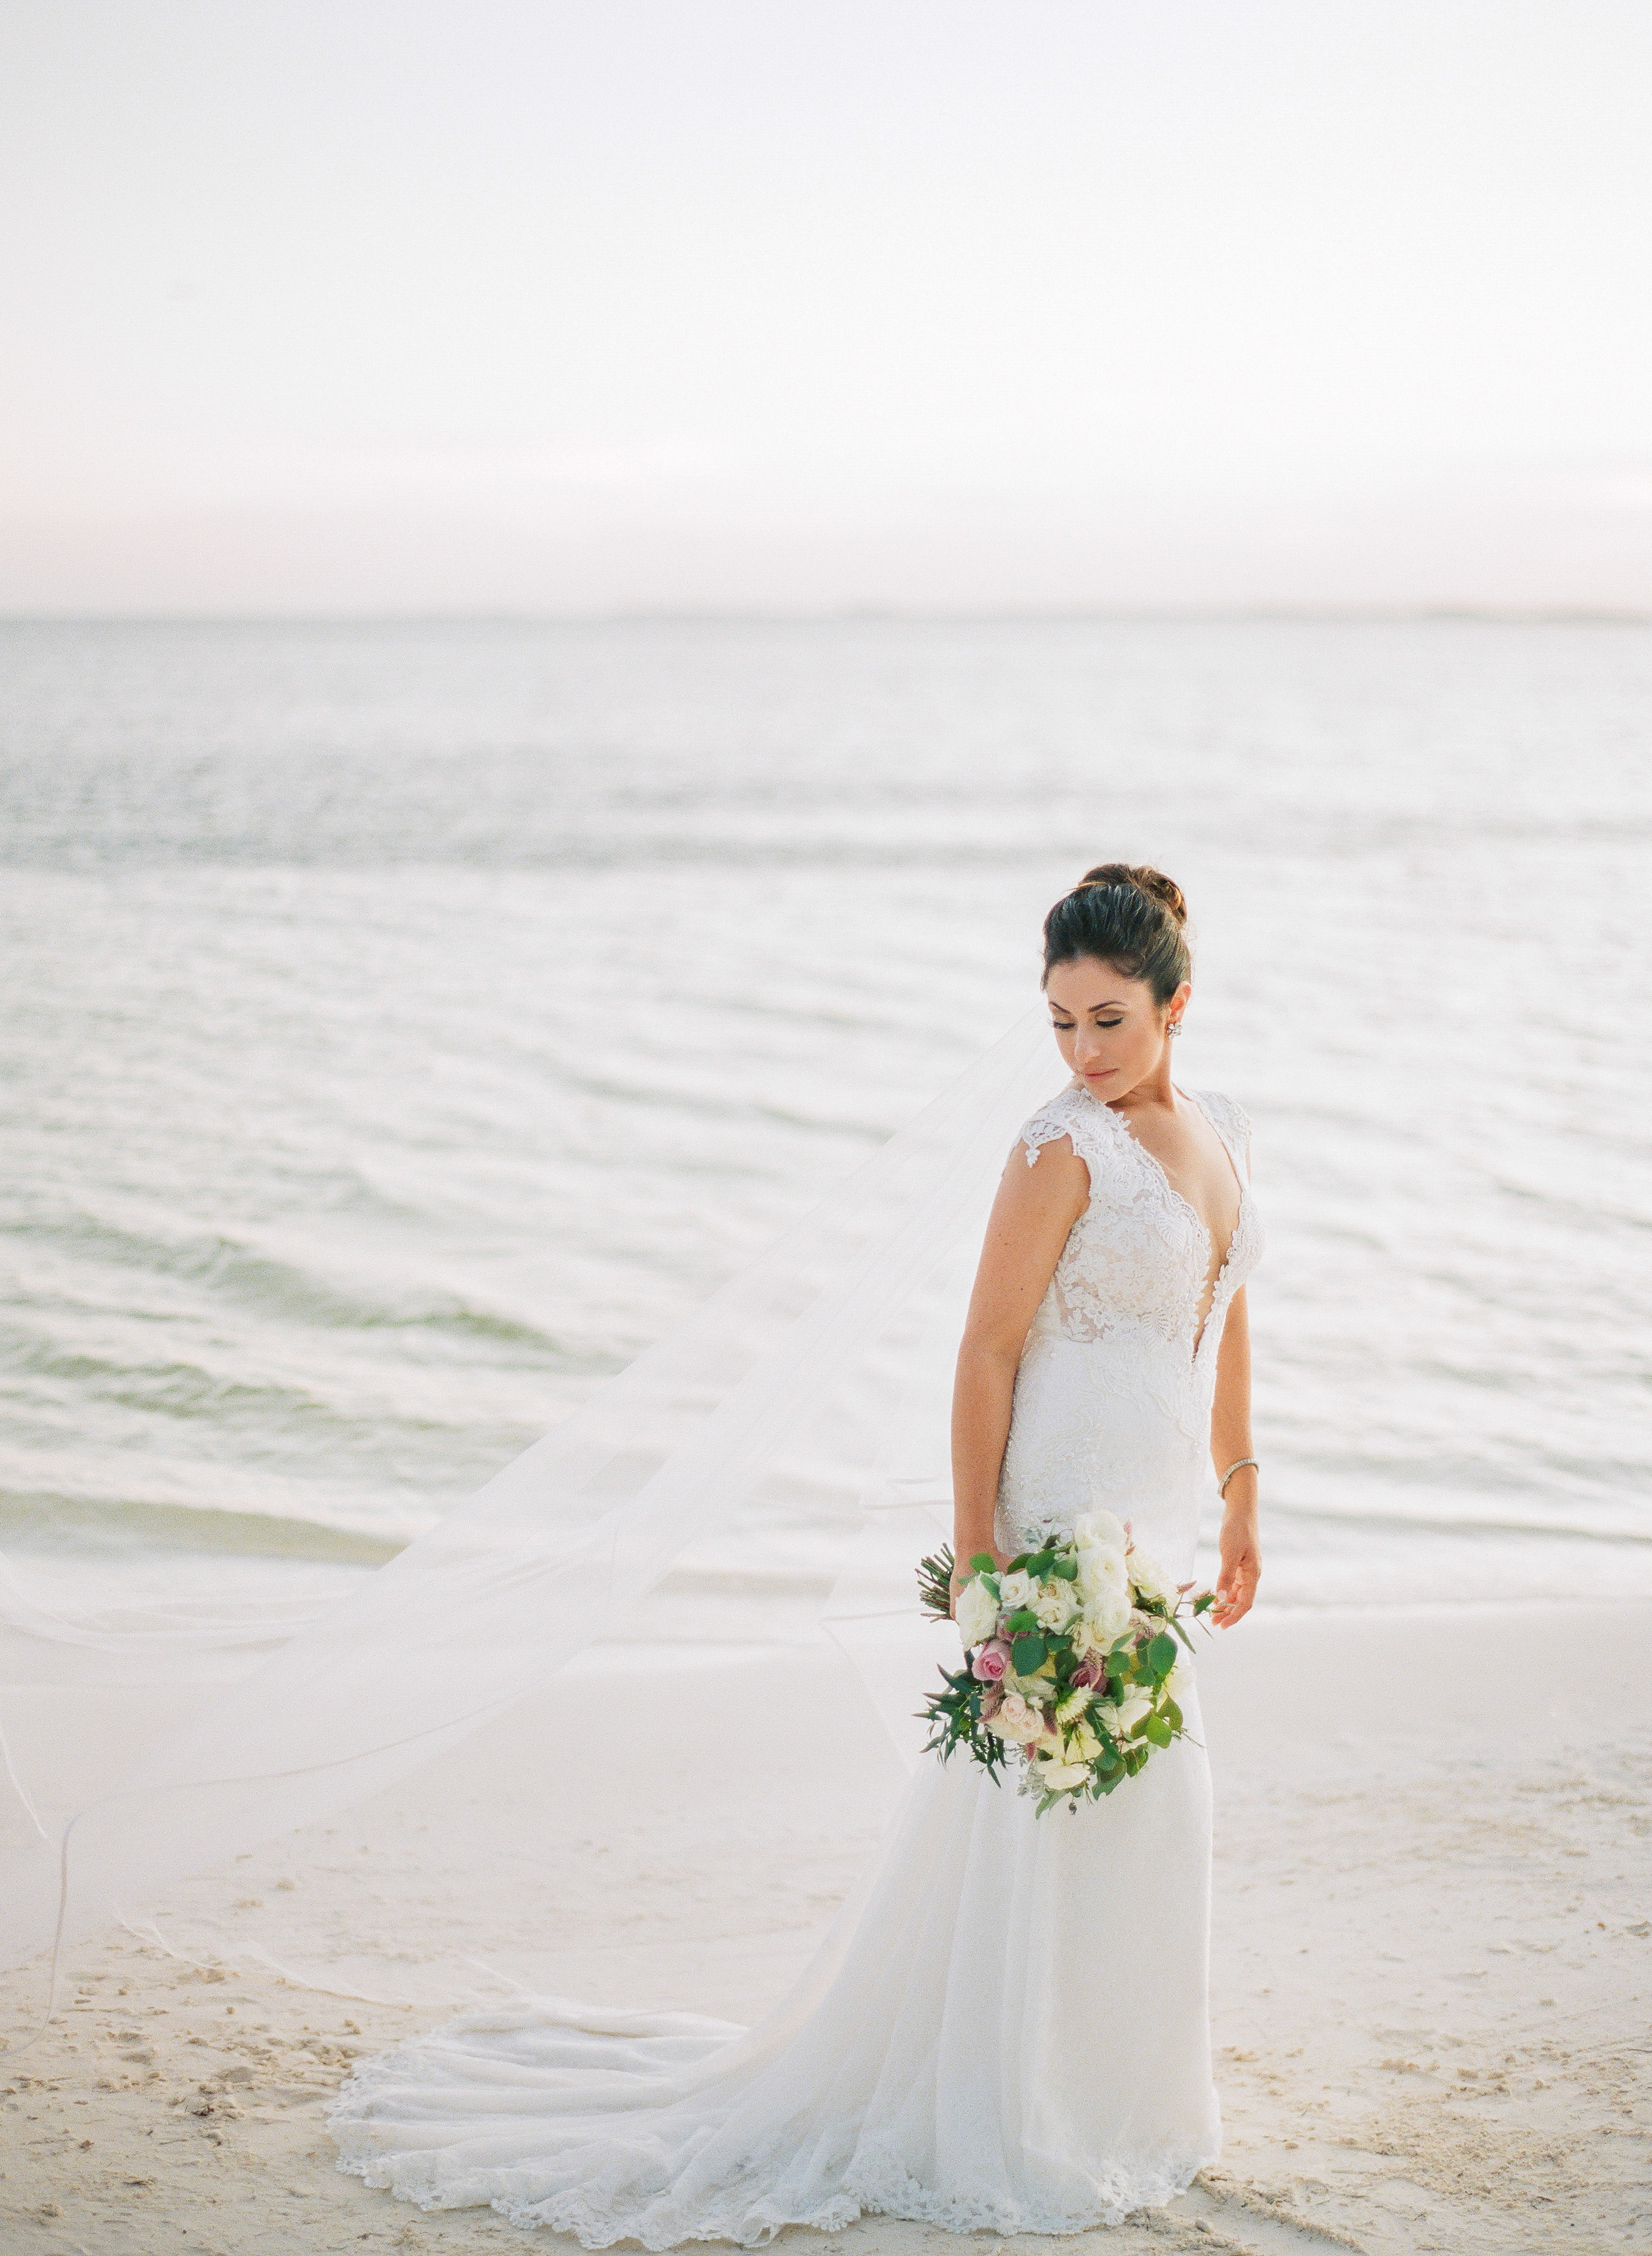 vicky james mexico wedding bride beach